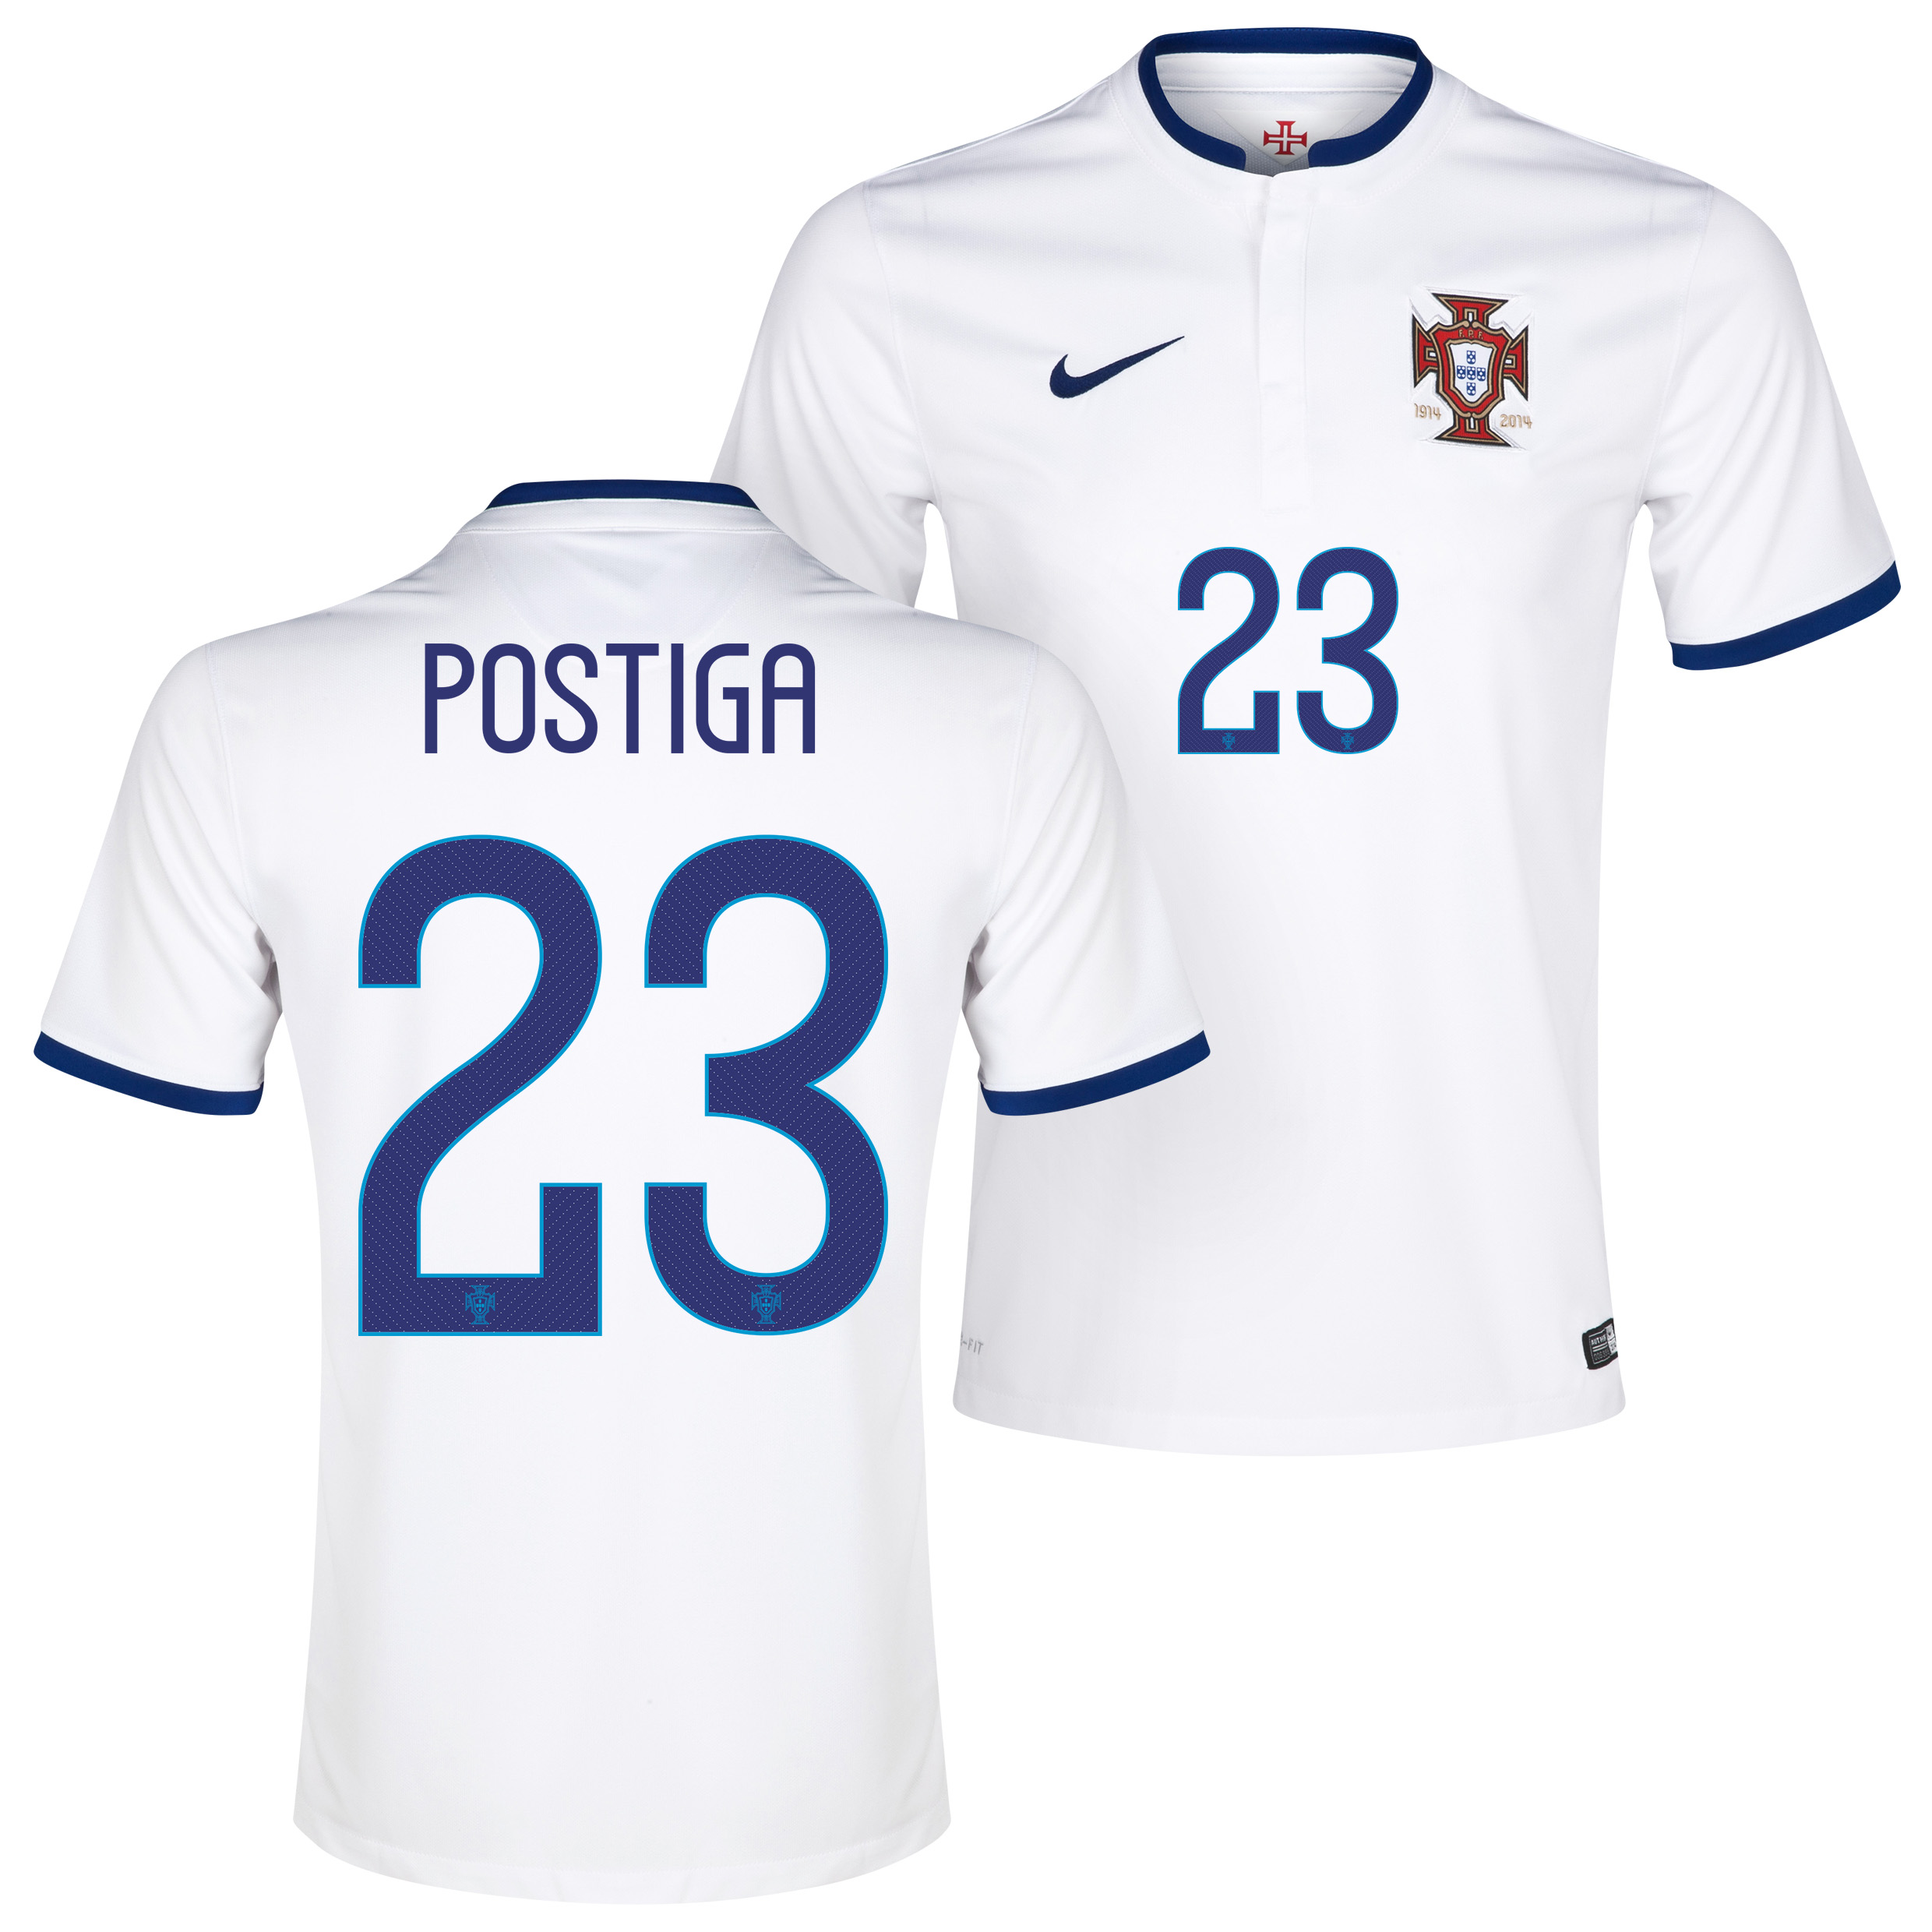 Portugal Away Shirt 2014/15 White with Postiga 23 printing